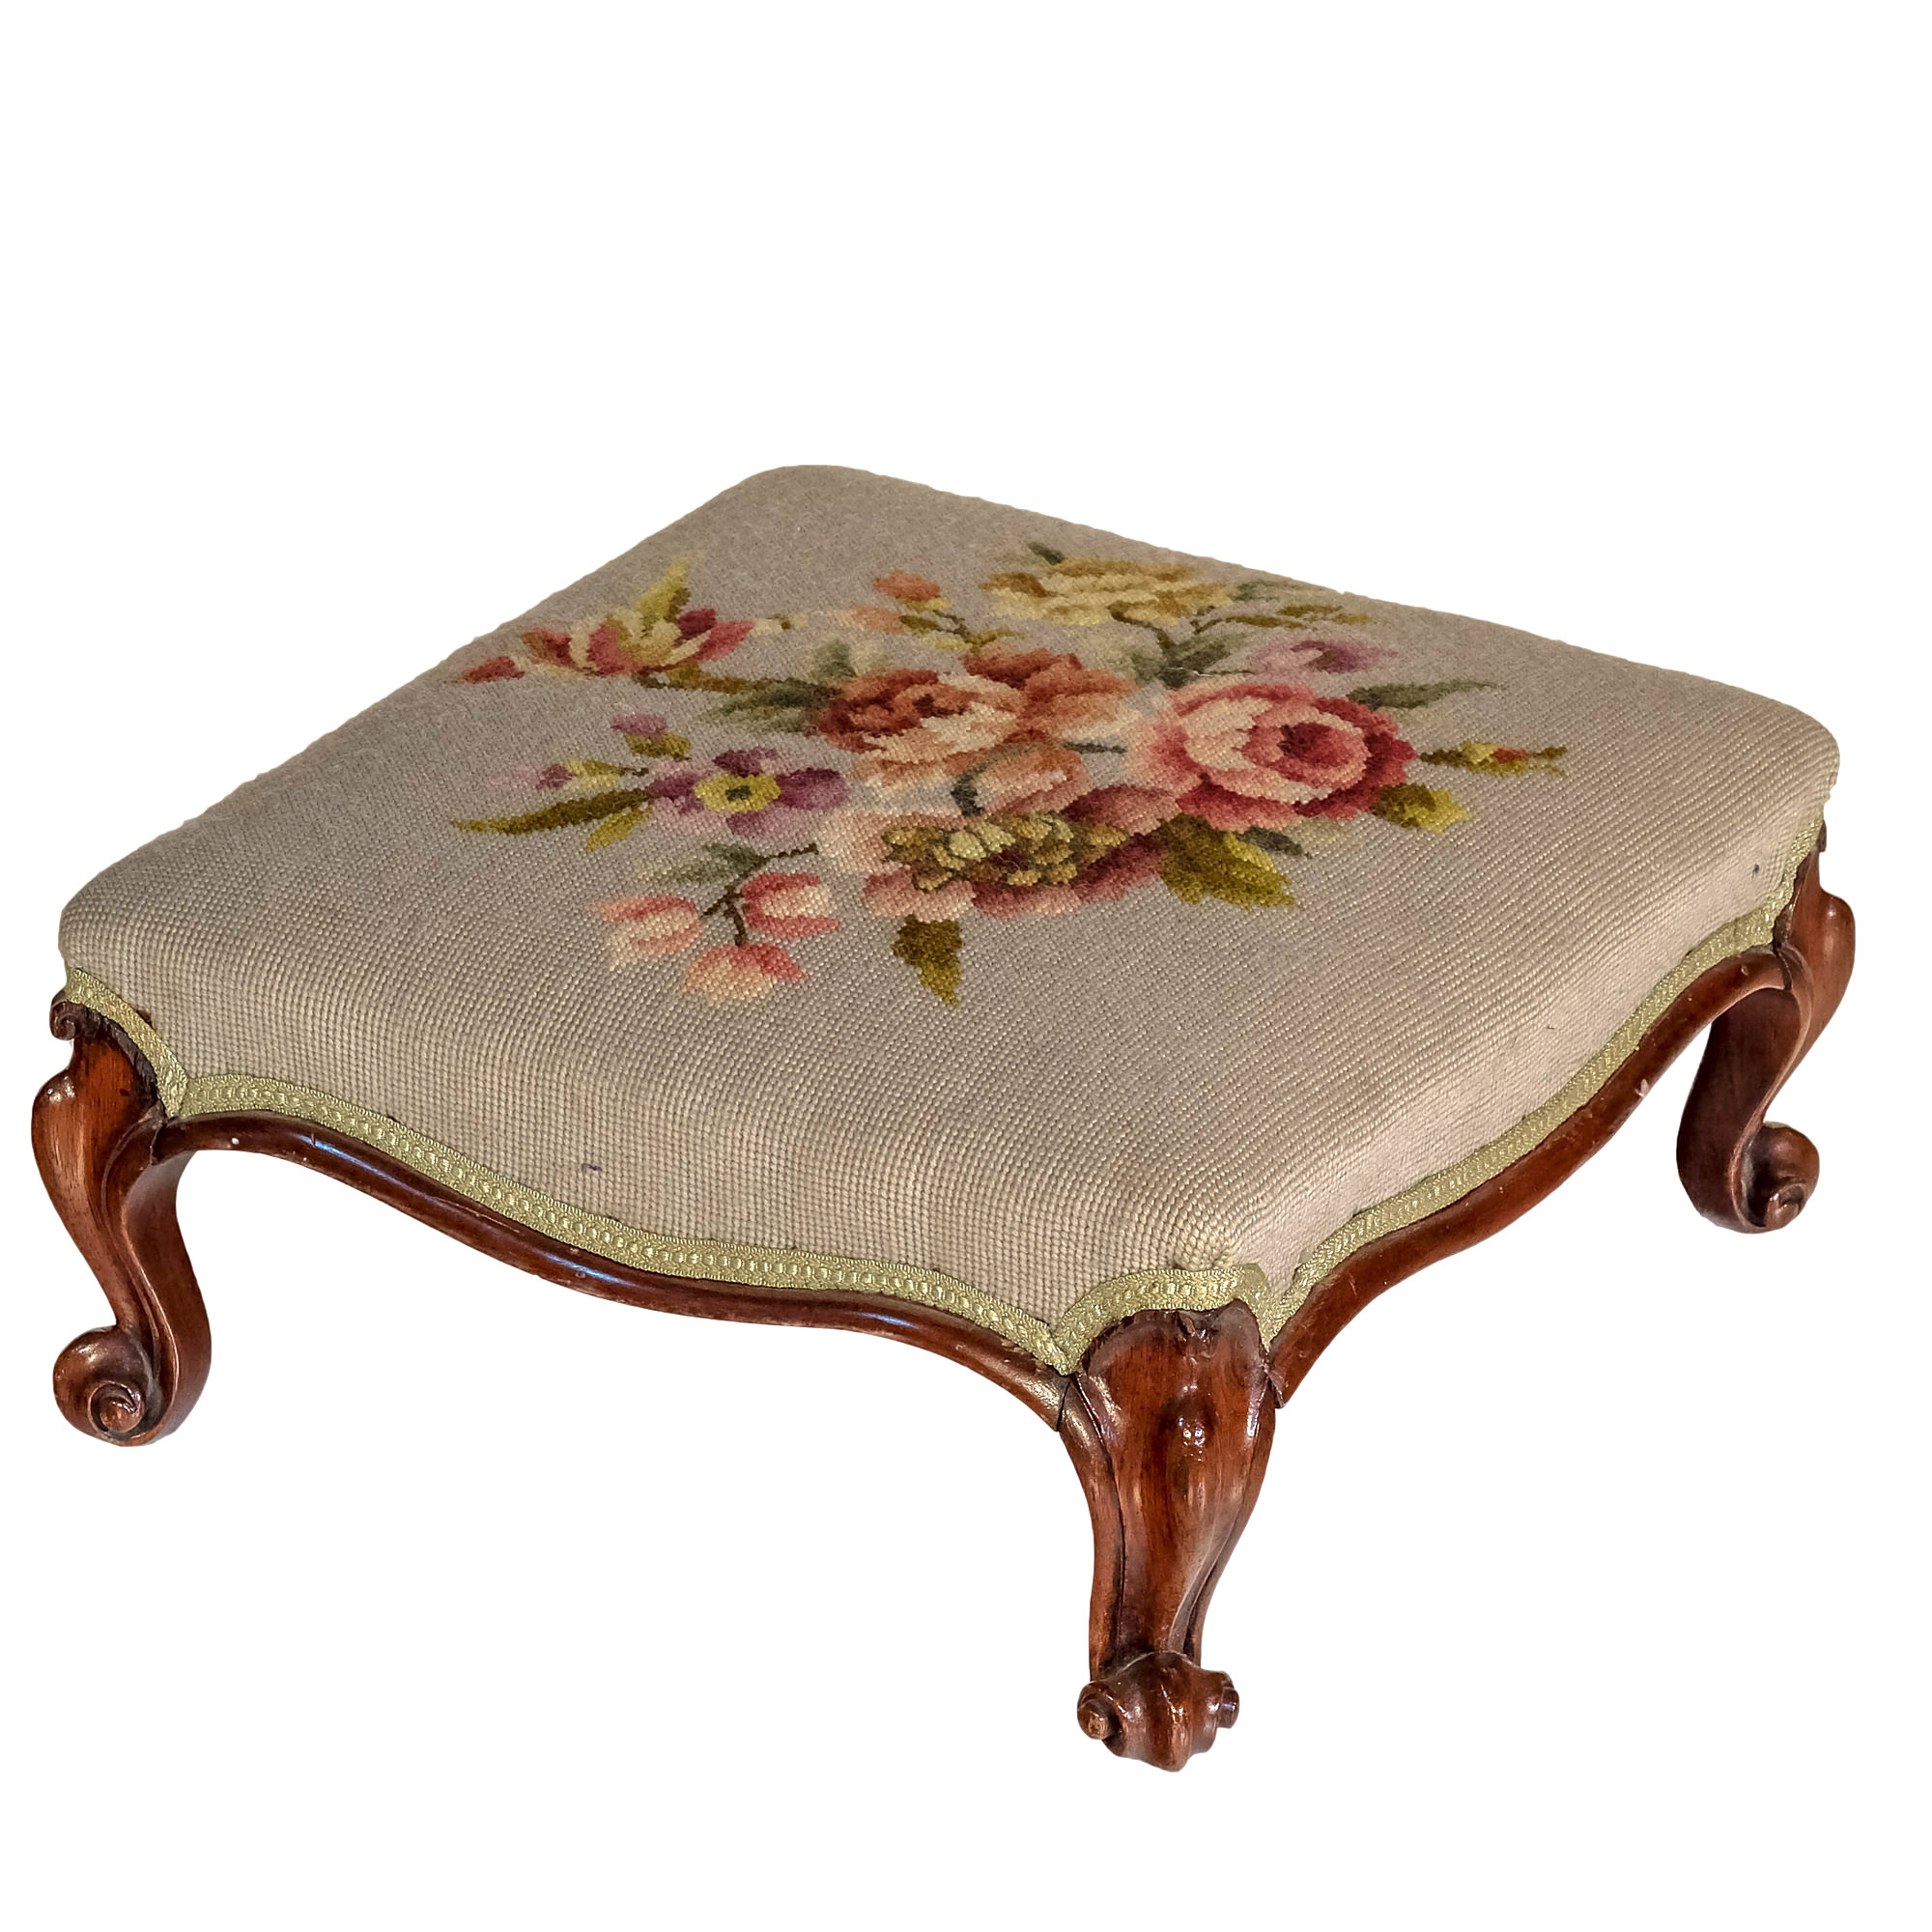 'Victorian Brazilian Rosewood and Mahogany Footstool with Tapestry Upholstery Circa 1870'